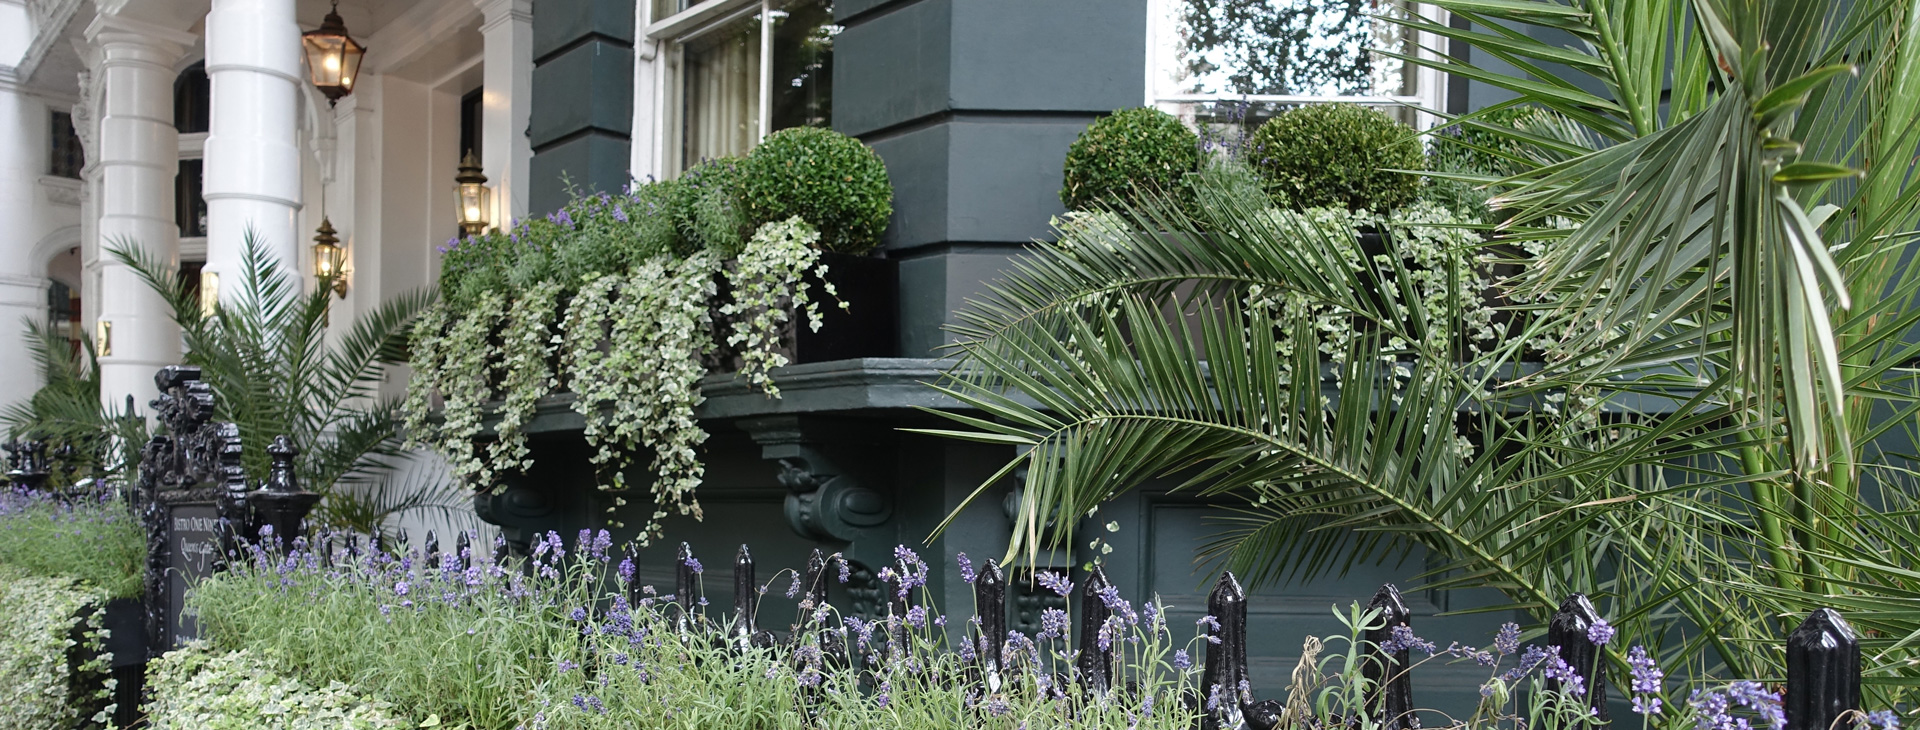 Enhance your front garden to make a strong first impression